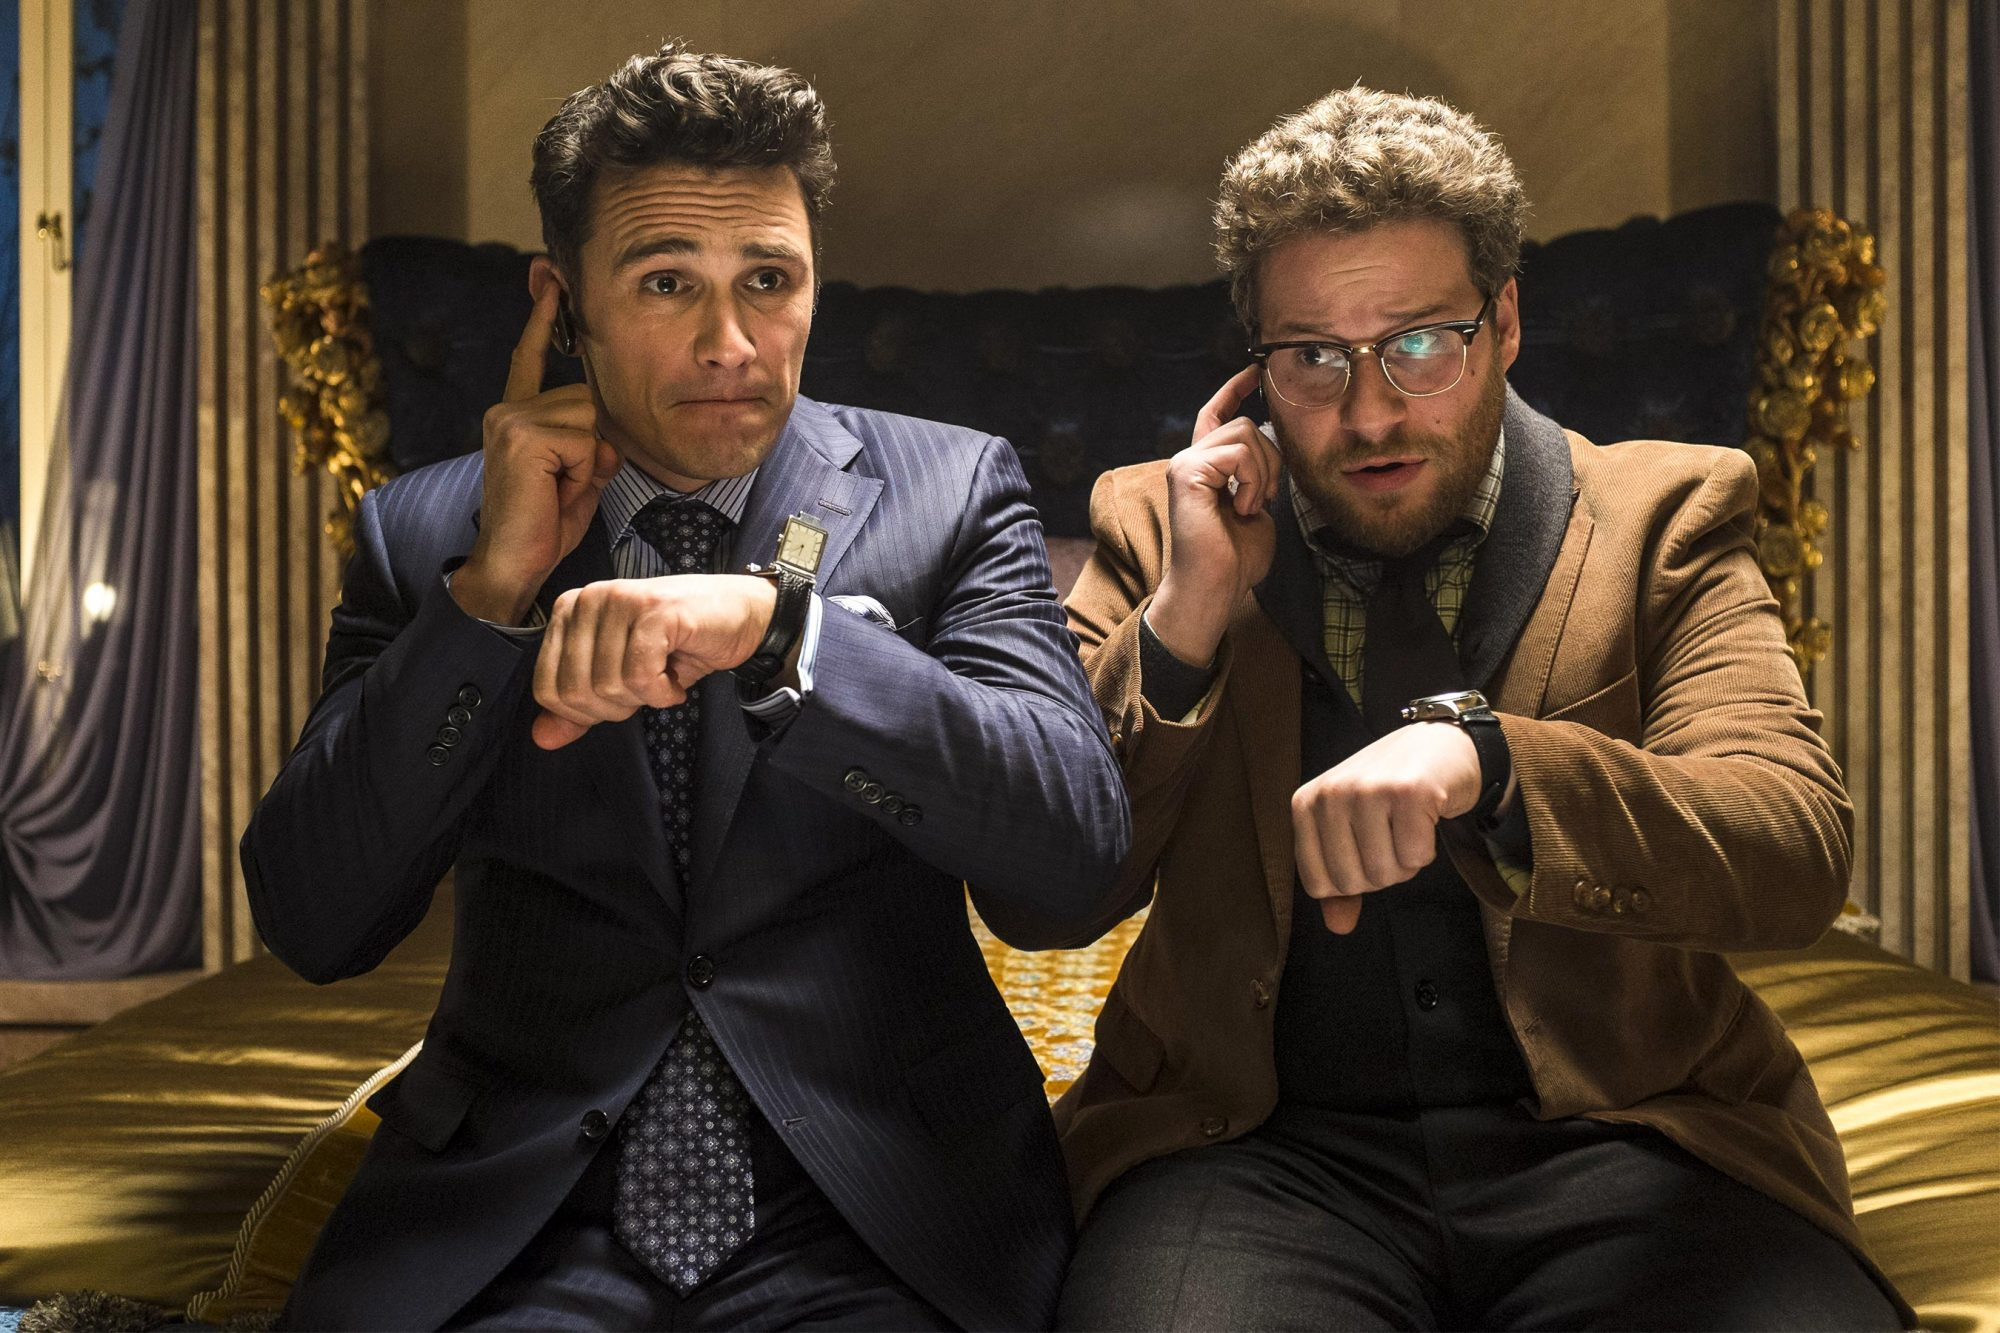 8. Seth Rogen and James Franco in The Interview (2014)